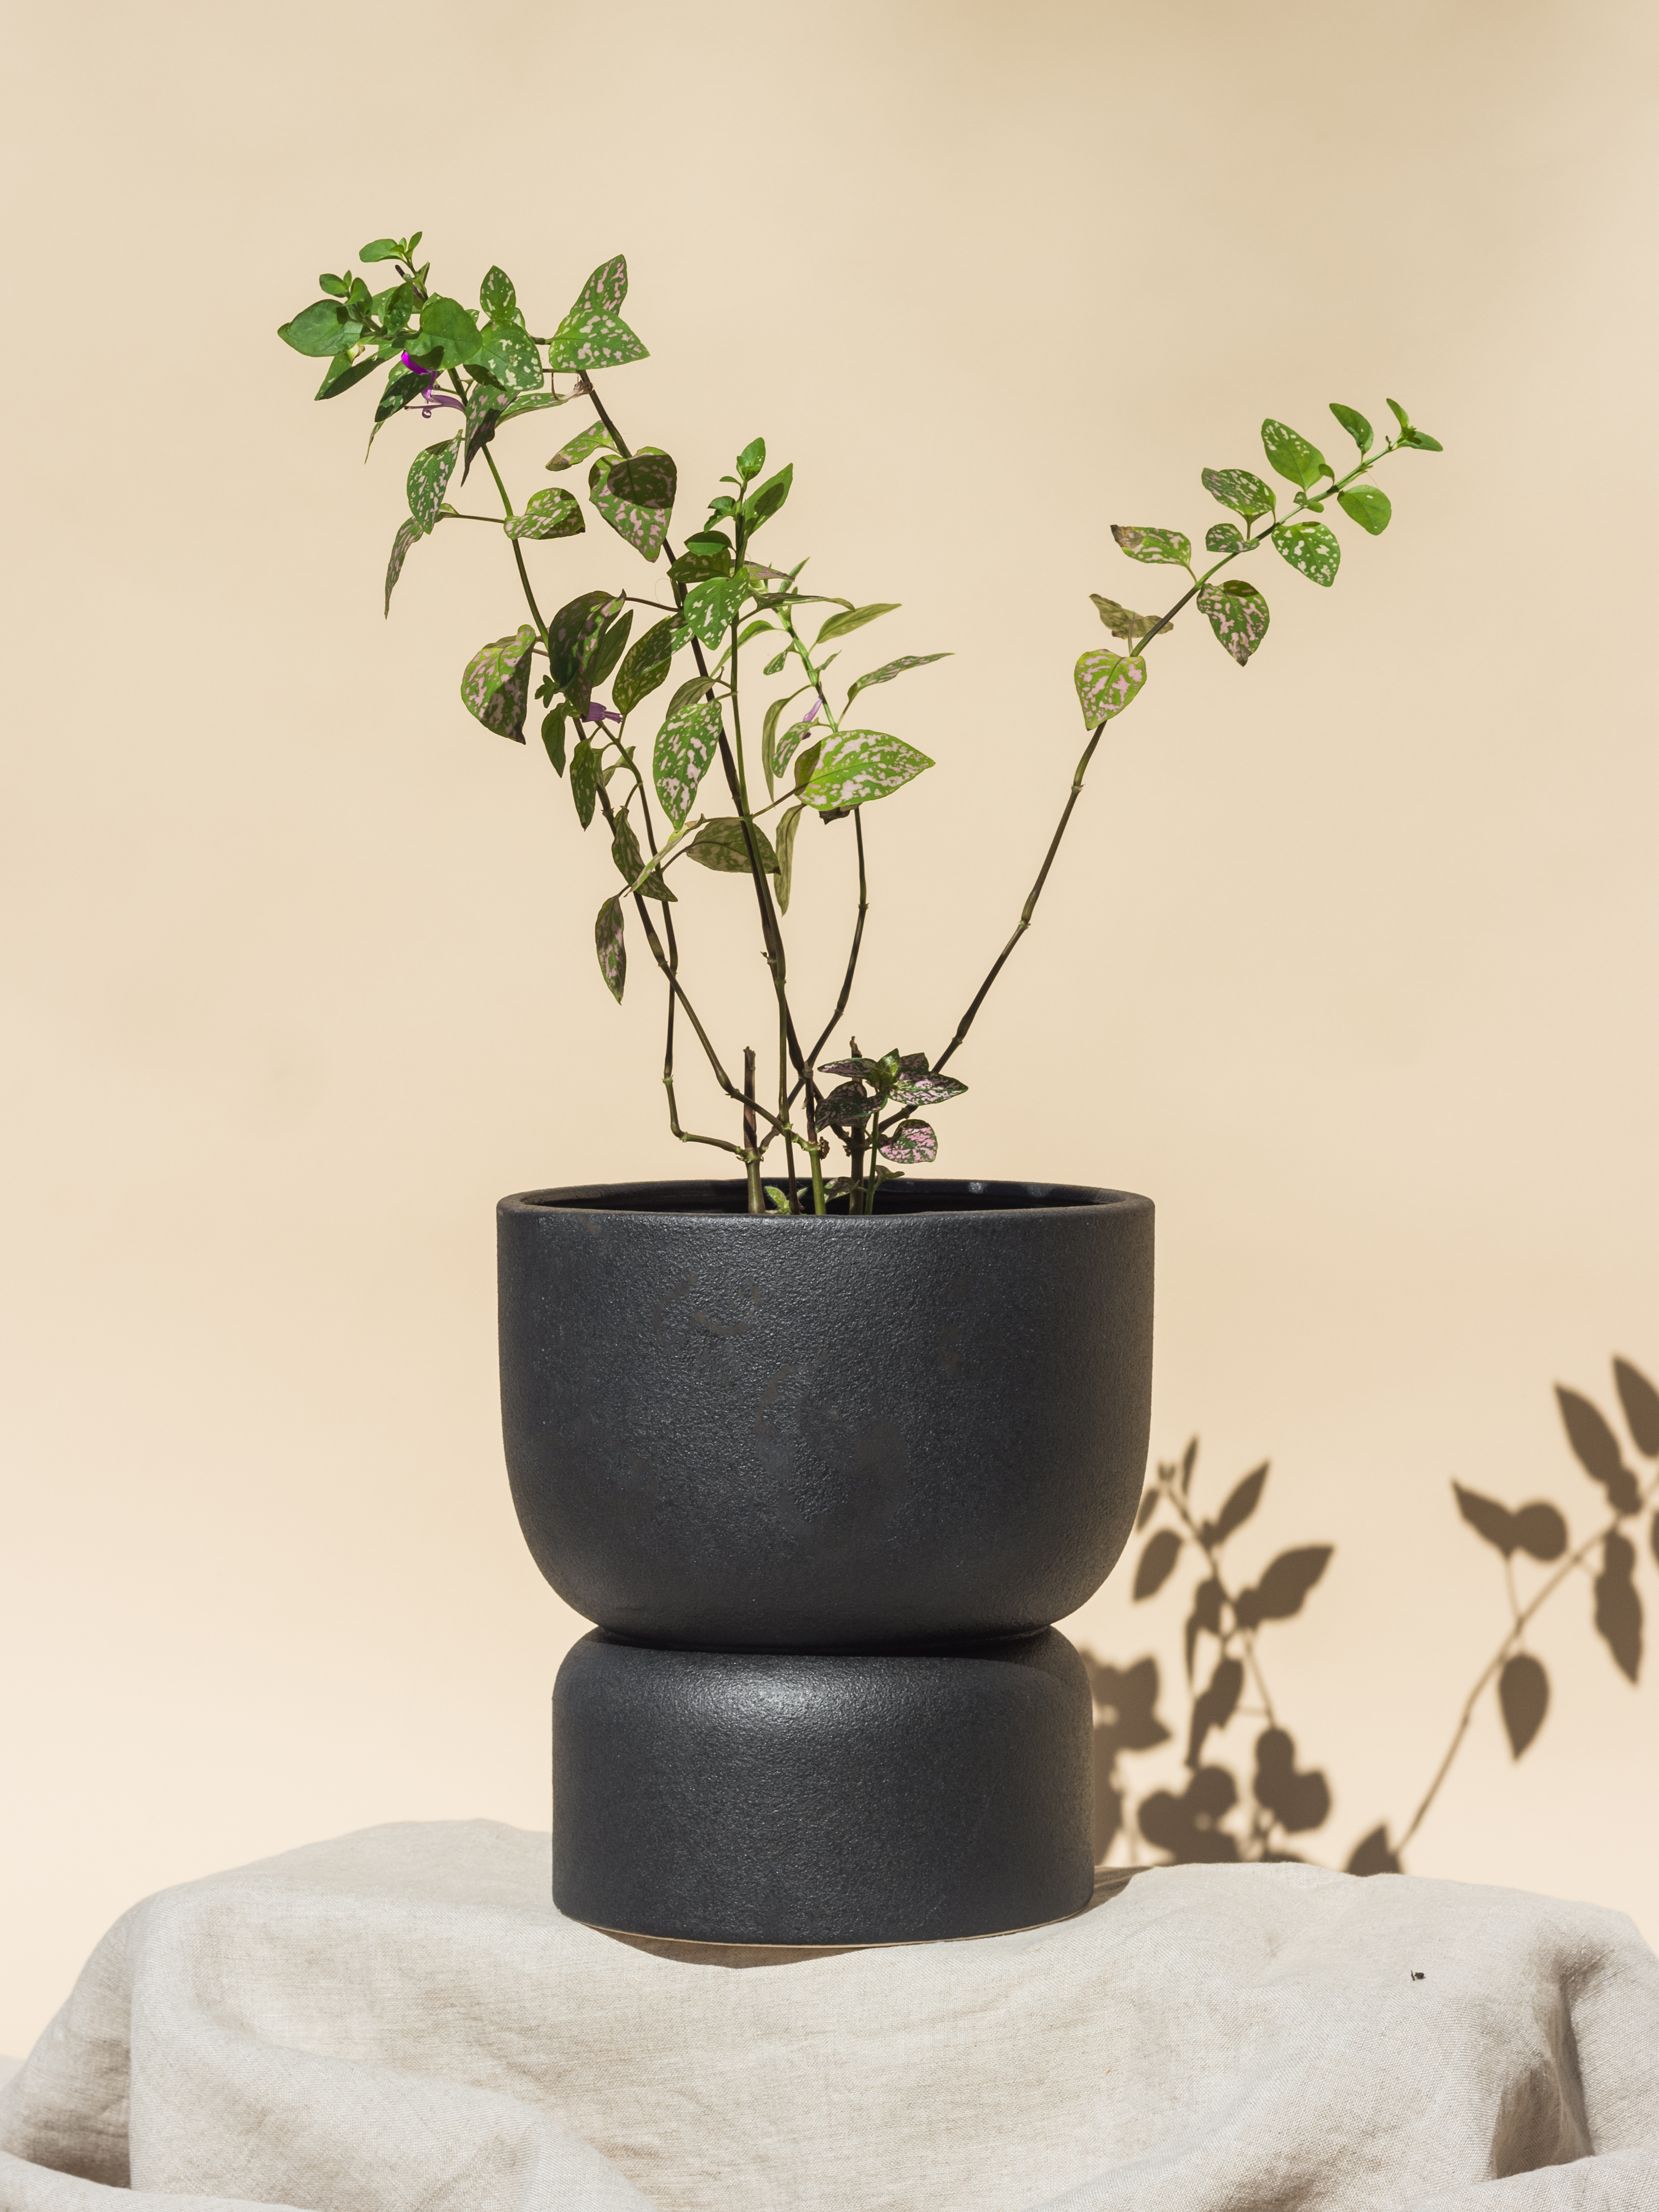 A plant in a pot  Description automatically generated